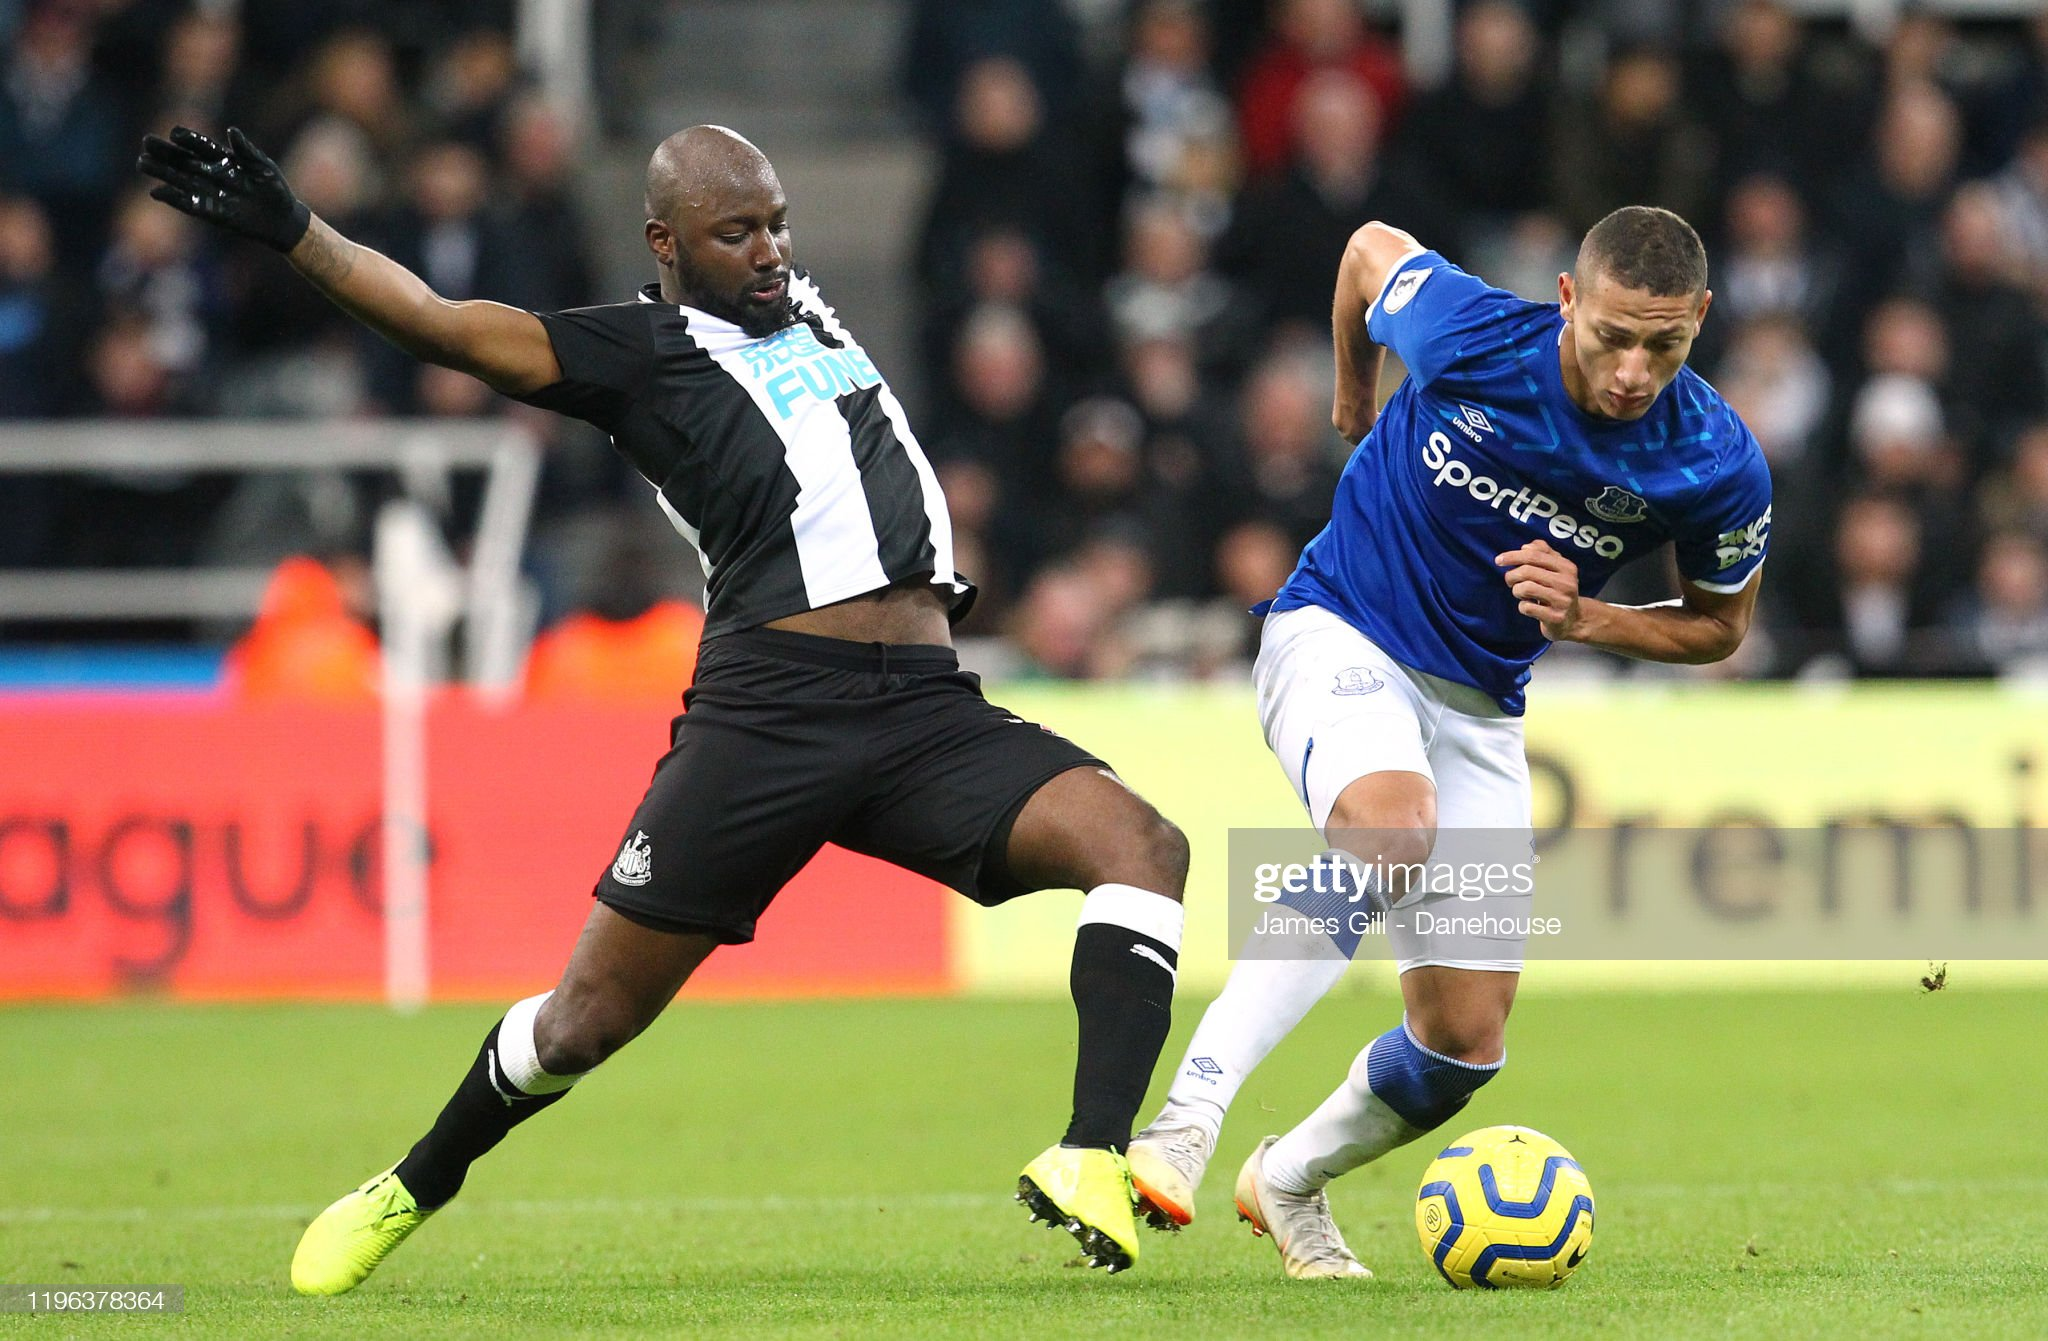 Everton v Newcastle preview, prediction and odds